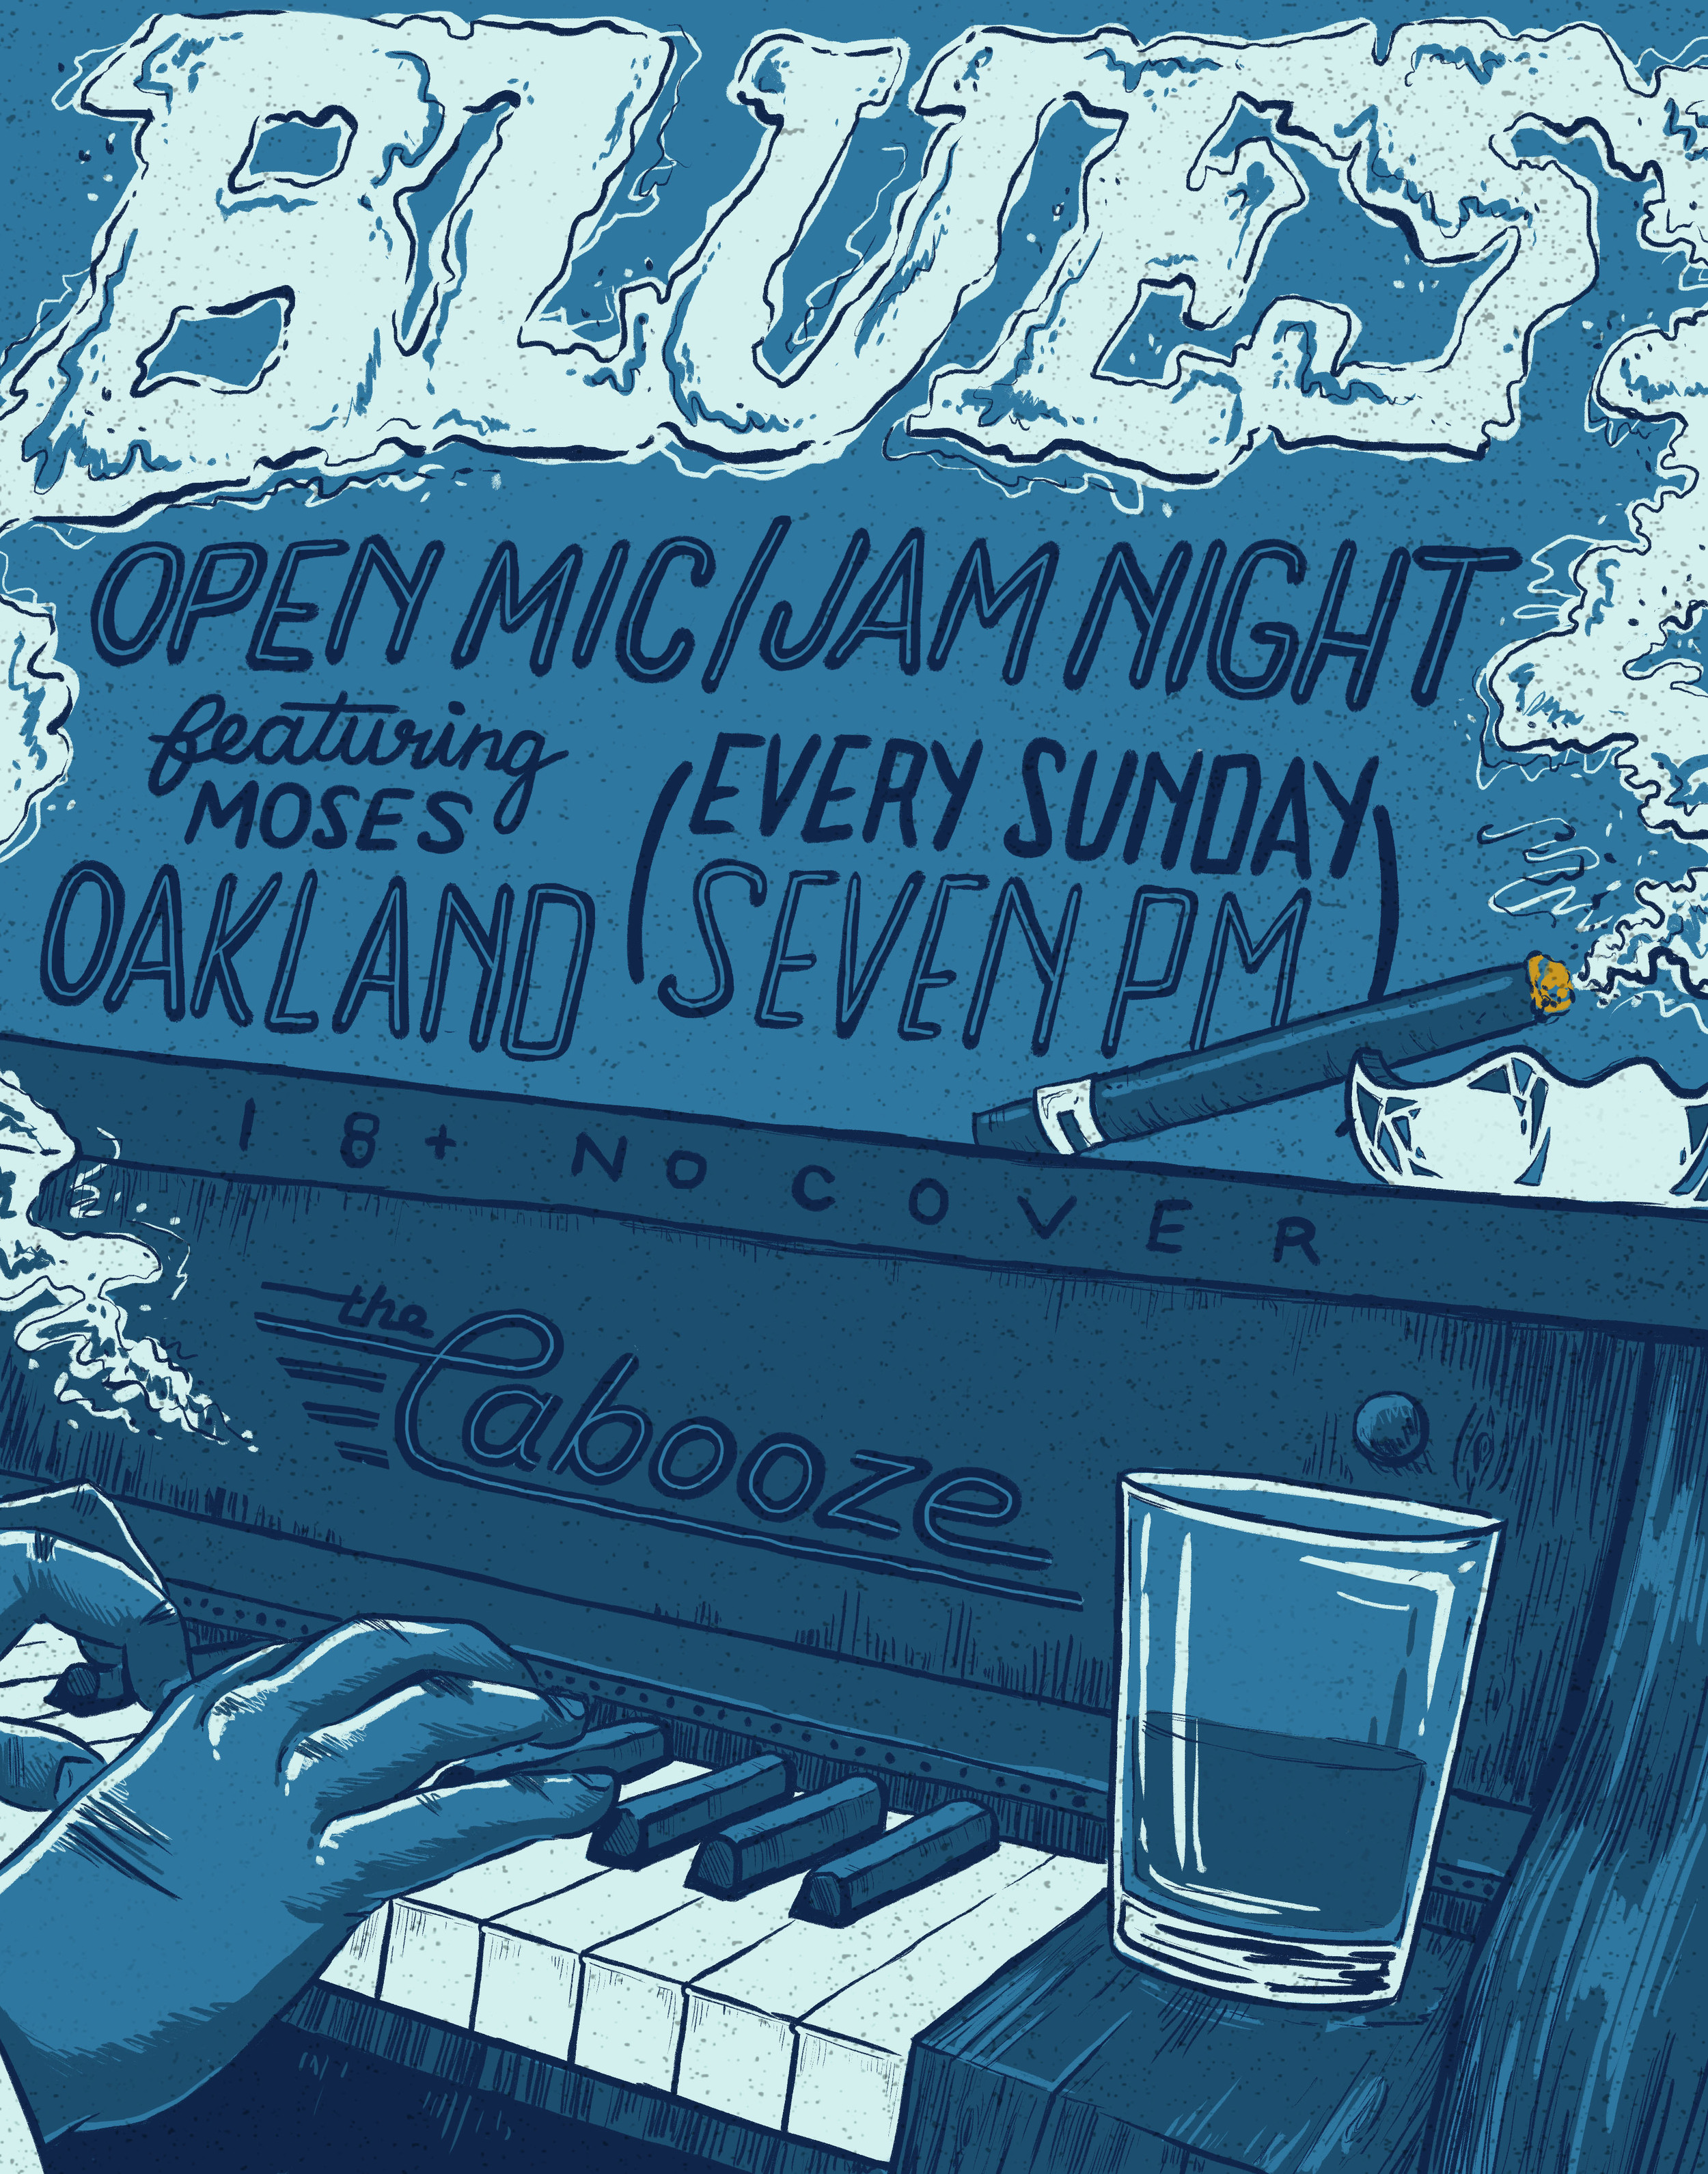 Blues Night   Show poster for The Cabooze